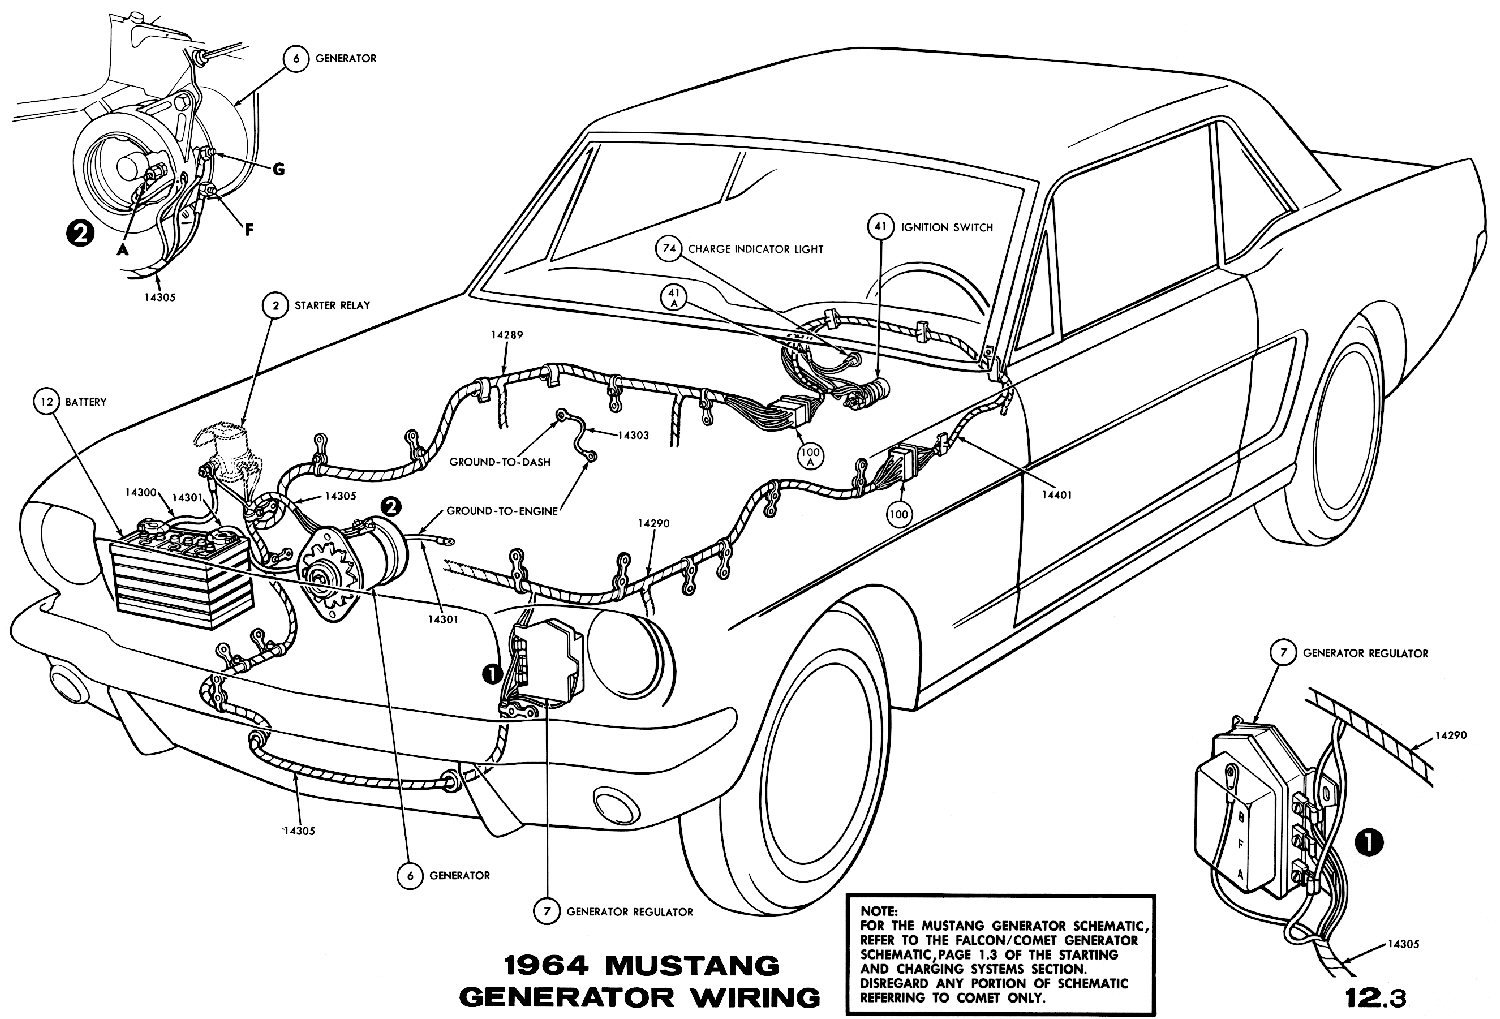 1965 Mustang Coil Wiring - Wiring Diagram Name on 1967 mustang wiper motor wiring diagram, 1965 mustang fuel pump diagram, 1965 mustang brake line diagram, 1965 mustang starter solenoid, 1965 mustang engine diagram, mustang wiring harness diagram, 1965 mustang exhaust diagram, 1965 mustang assembly diagram, 1965 mustang 289 hipo engine, 1965 mustang outline, 1965 mustang blueprints, 1965 mustang door diagram, 1964 mustang wiring diagram, 1965 mustang burnt amber, 1966 mustang alternator diagram, 1965 mustang fuse box diagram, 1965 mustang voltage regulator diagram, ford mustang wiring diagram, 1965 mustang tachometer diagram, 1966 mustang wiring diagram,